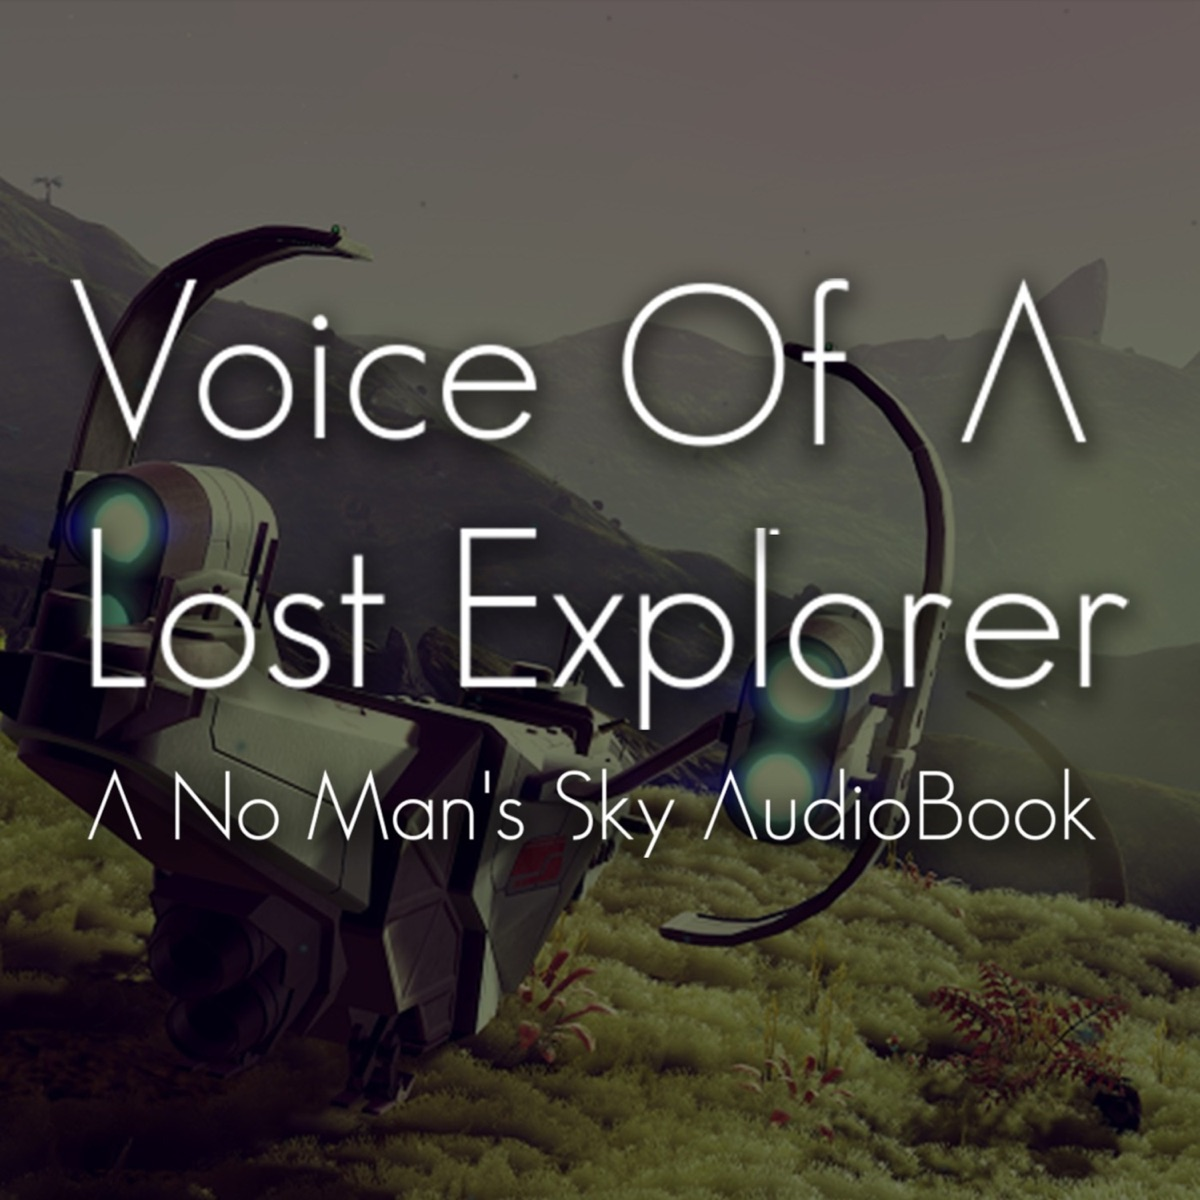 Voice Of A Lost Explorer: A No Man's Sky Audiobook